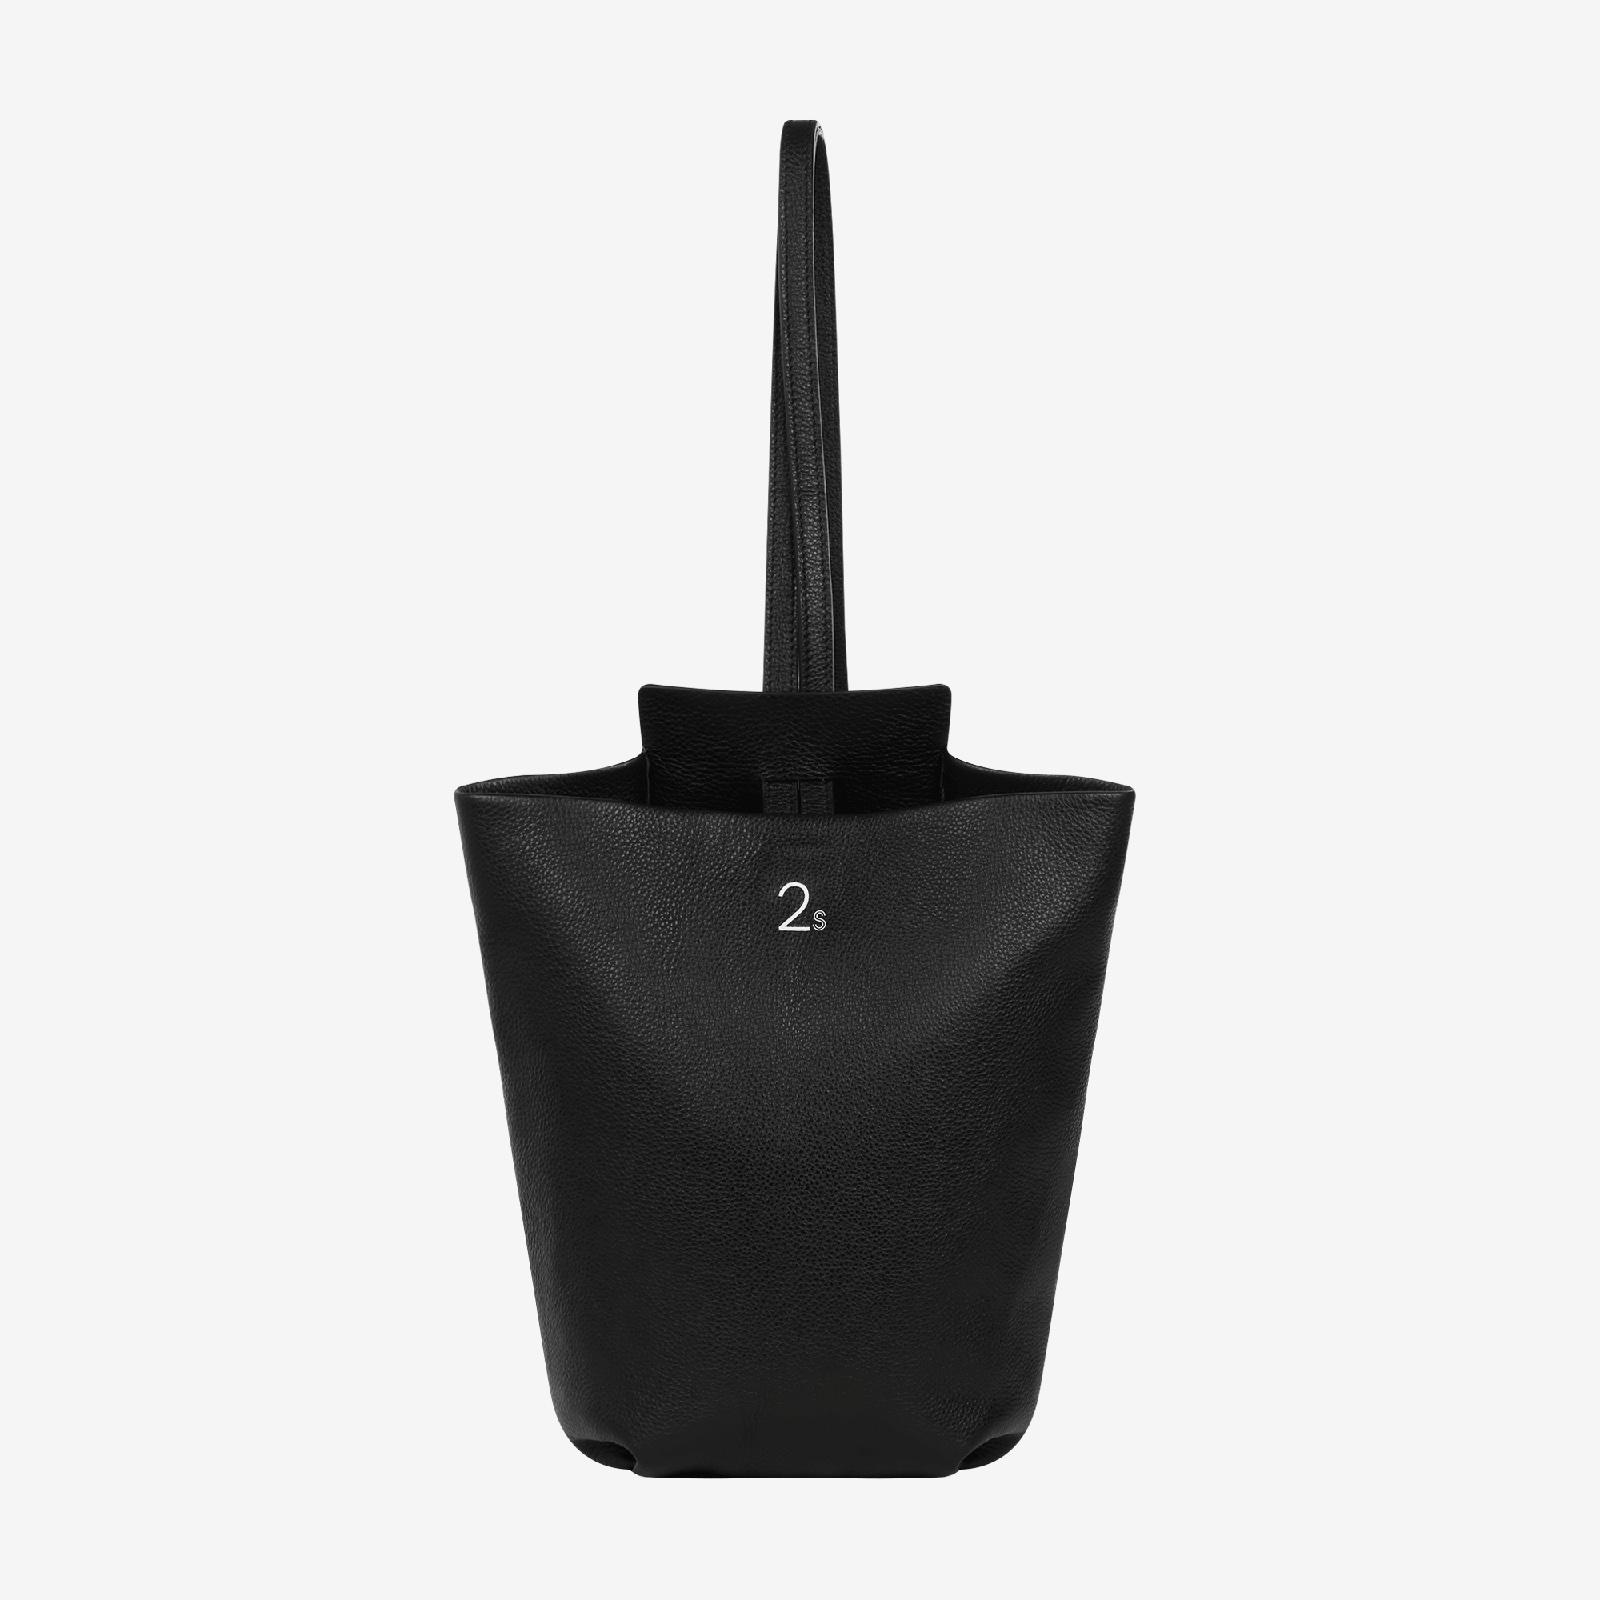 Black bag product photography